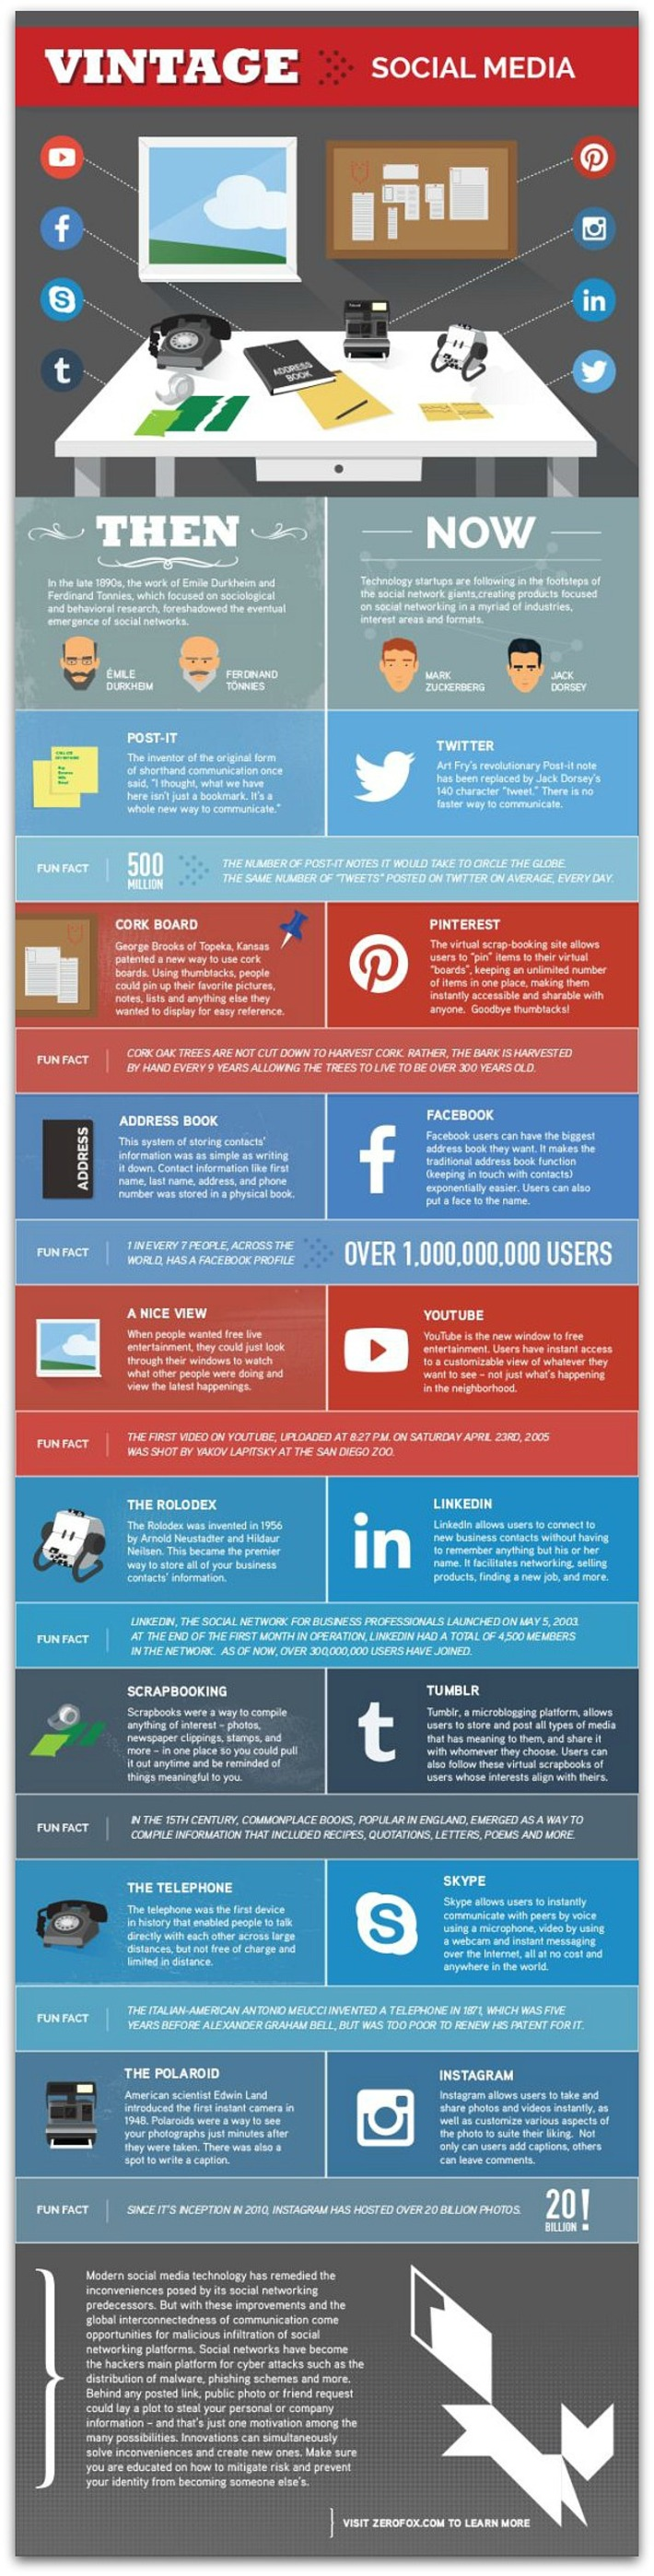 Infographic: Social media then and now | Nerdy Needs | Scoop.it